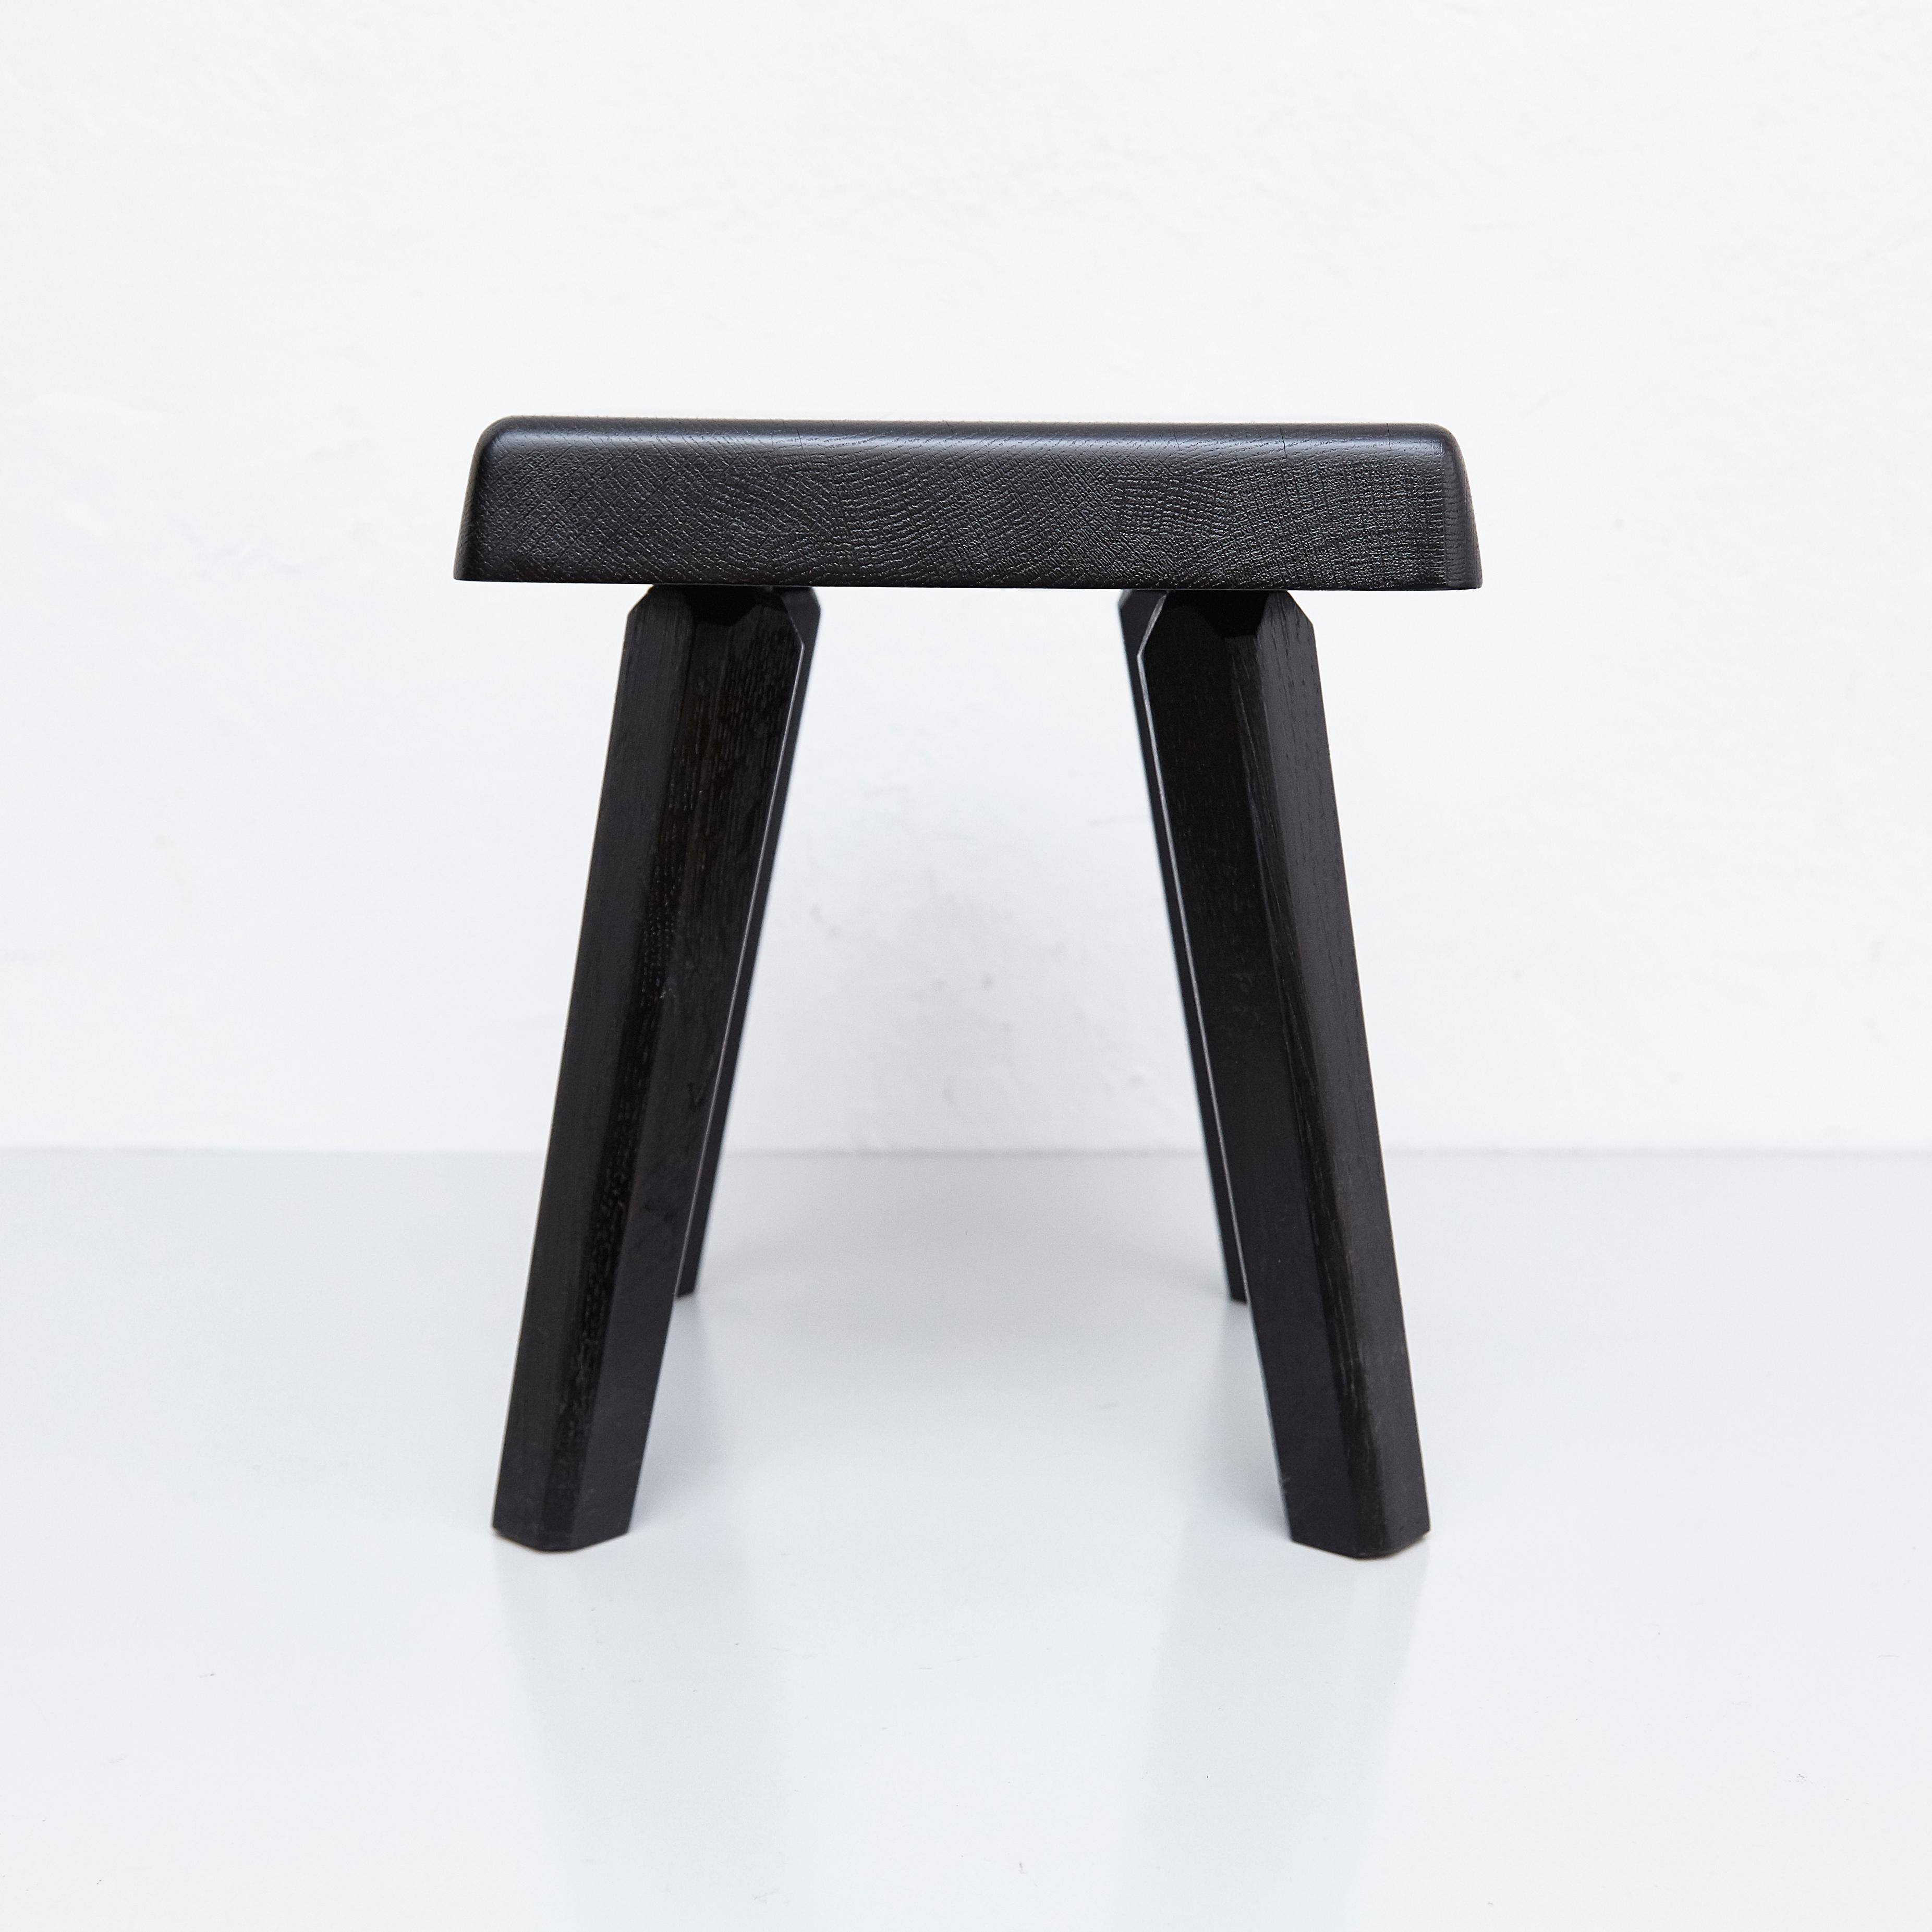 Groovy Pierre Chapo Special Black Edition Stool Ibusinesslaw Wood Chair Design Ideas Ibusinesslaworg